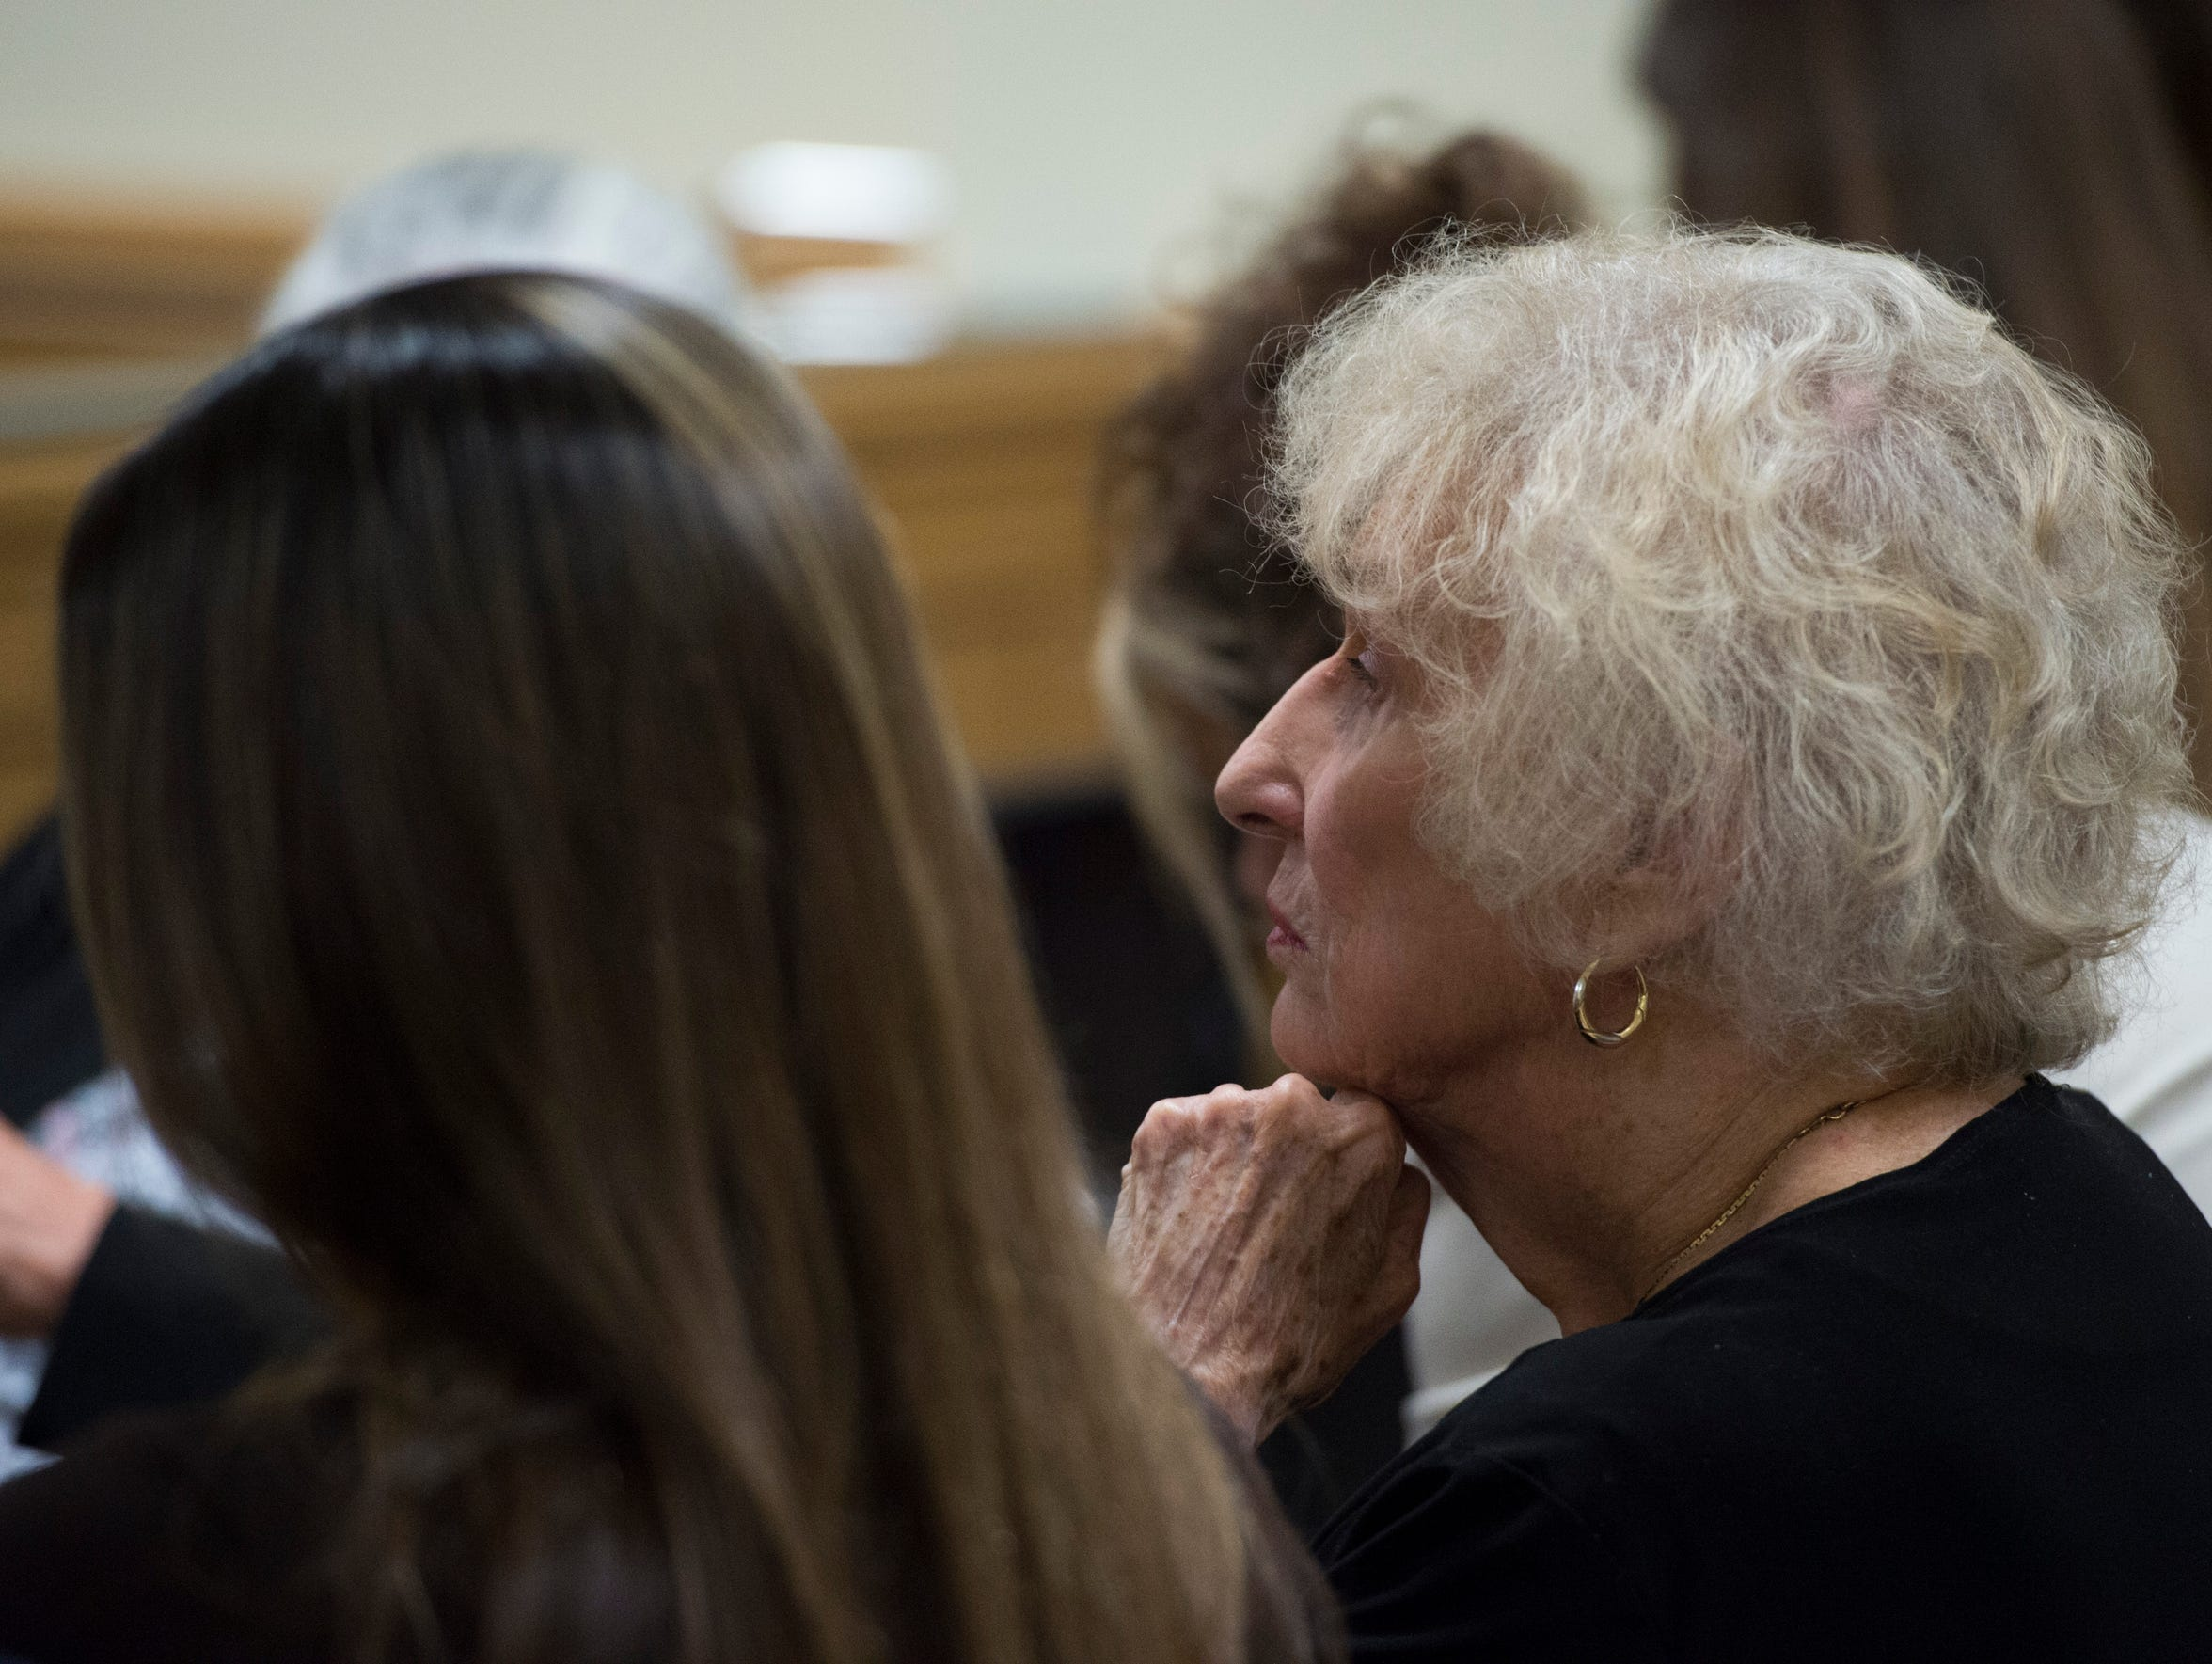 Relatives of murder victim Gertrude Trbovich, a 66-year-old